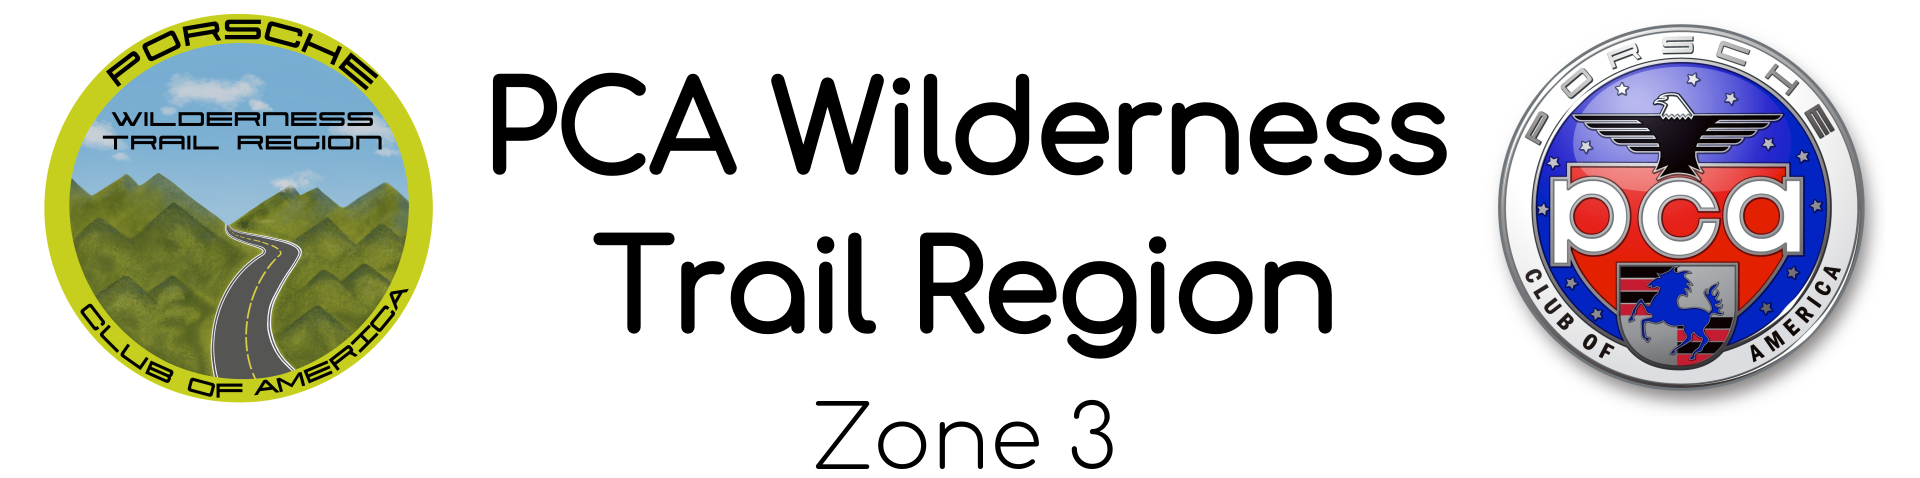 Wilderness Trail Region – PCA